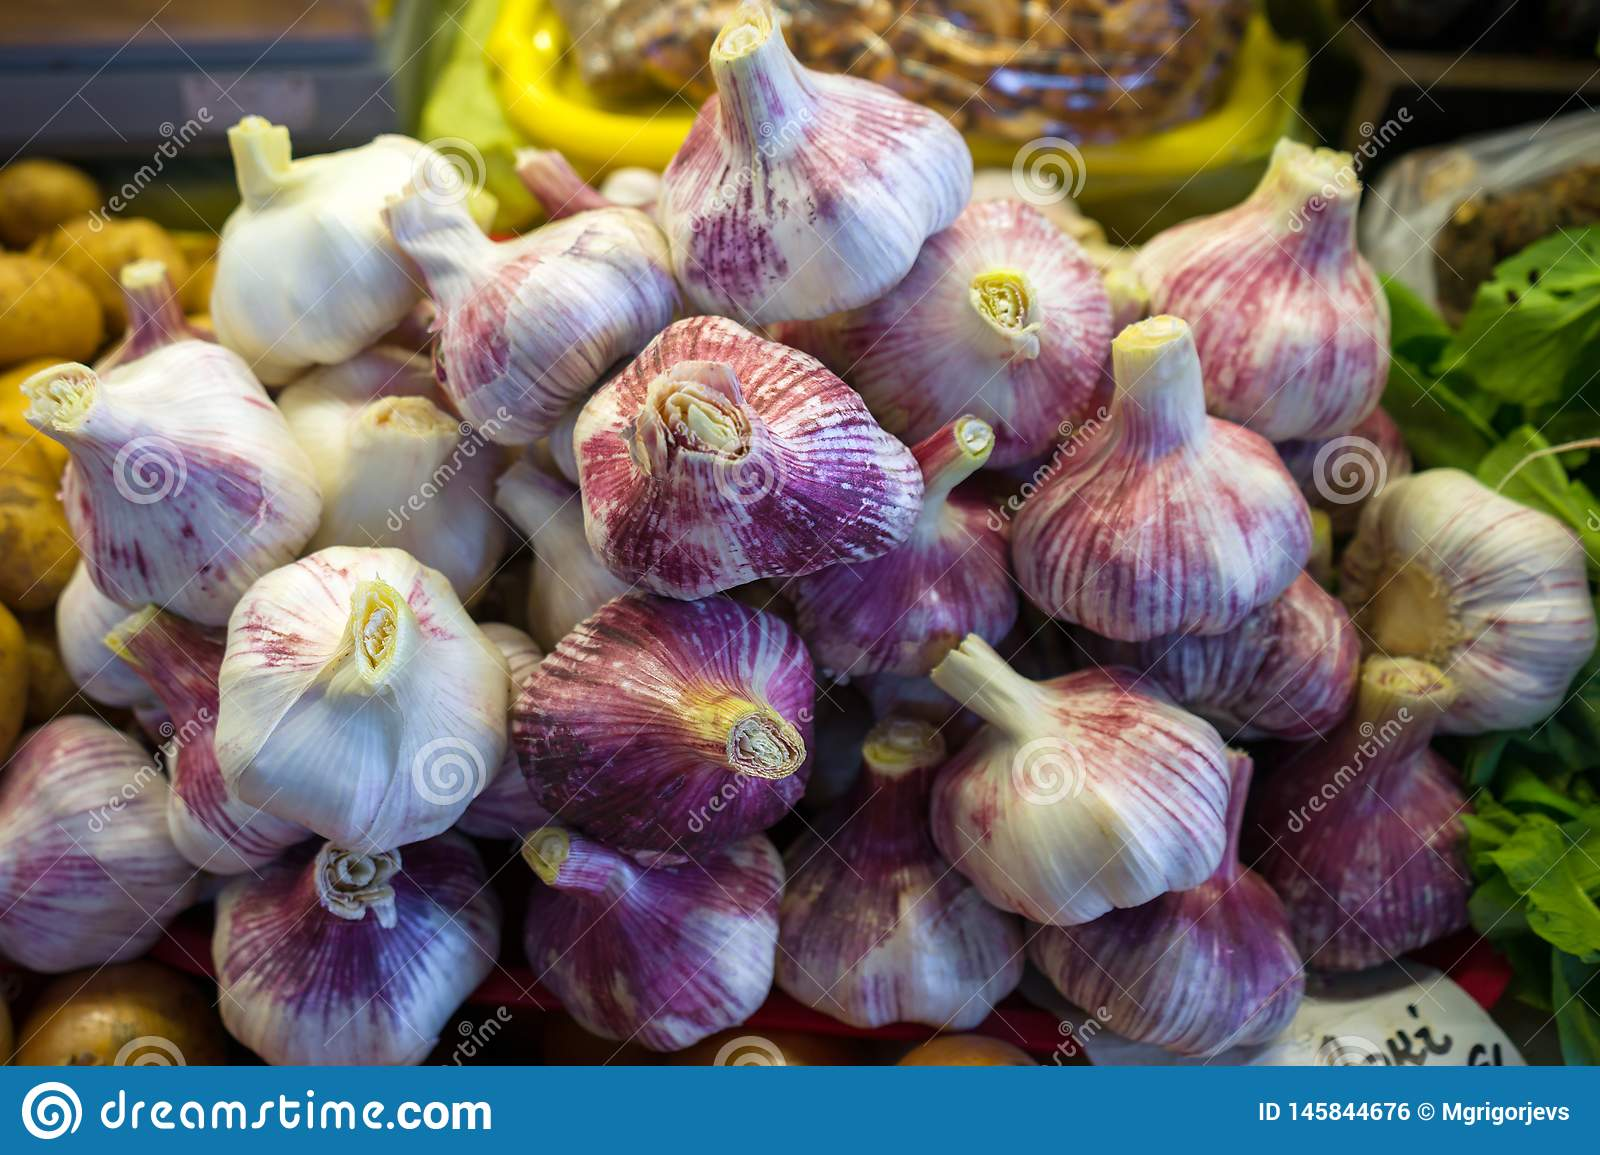 Close up of white and purple garlic bulbs on market stand for sale.